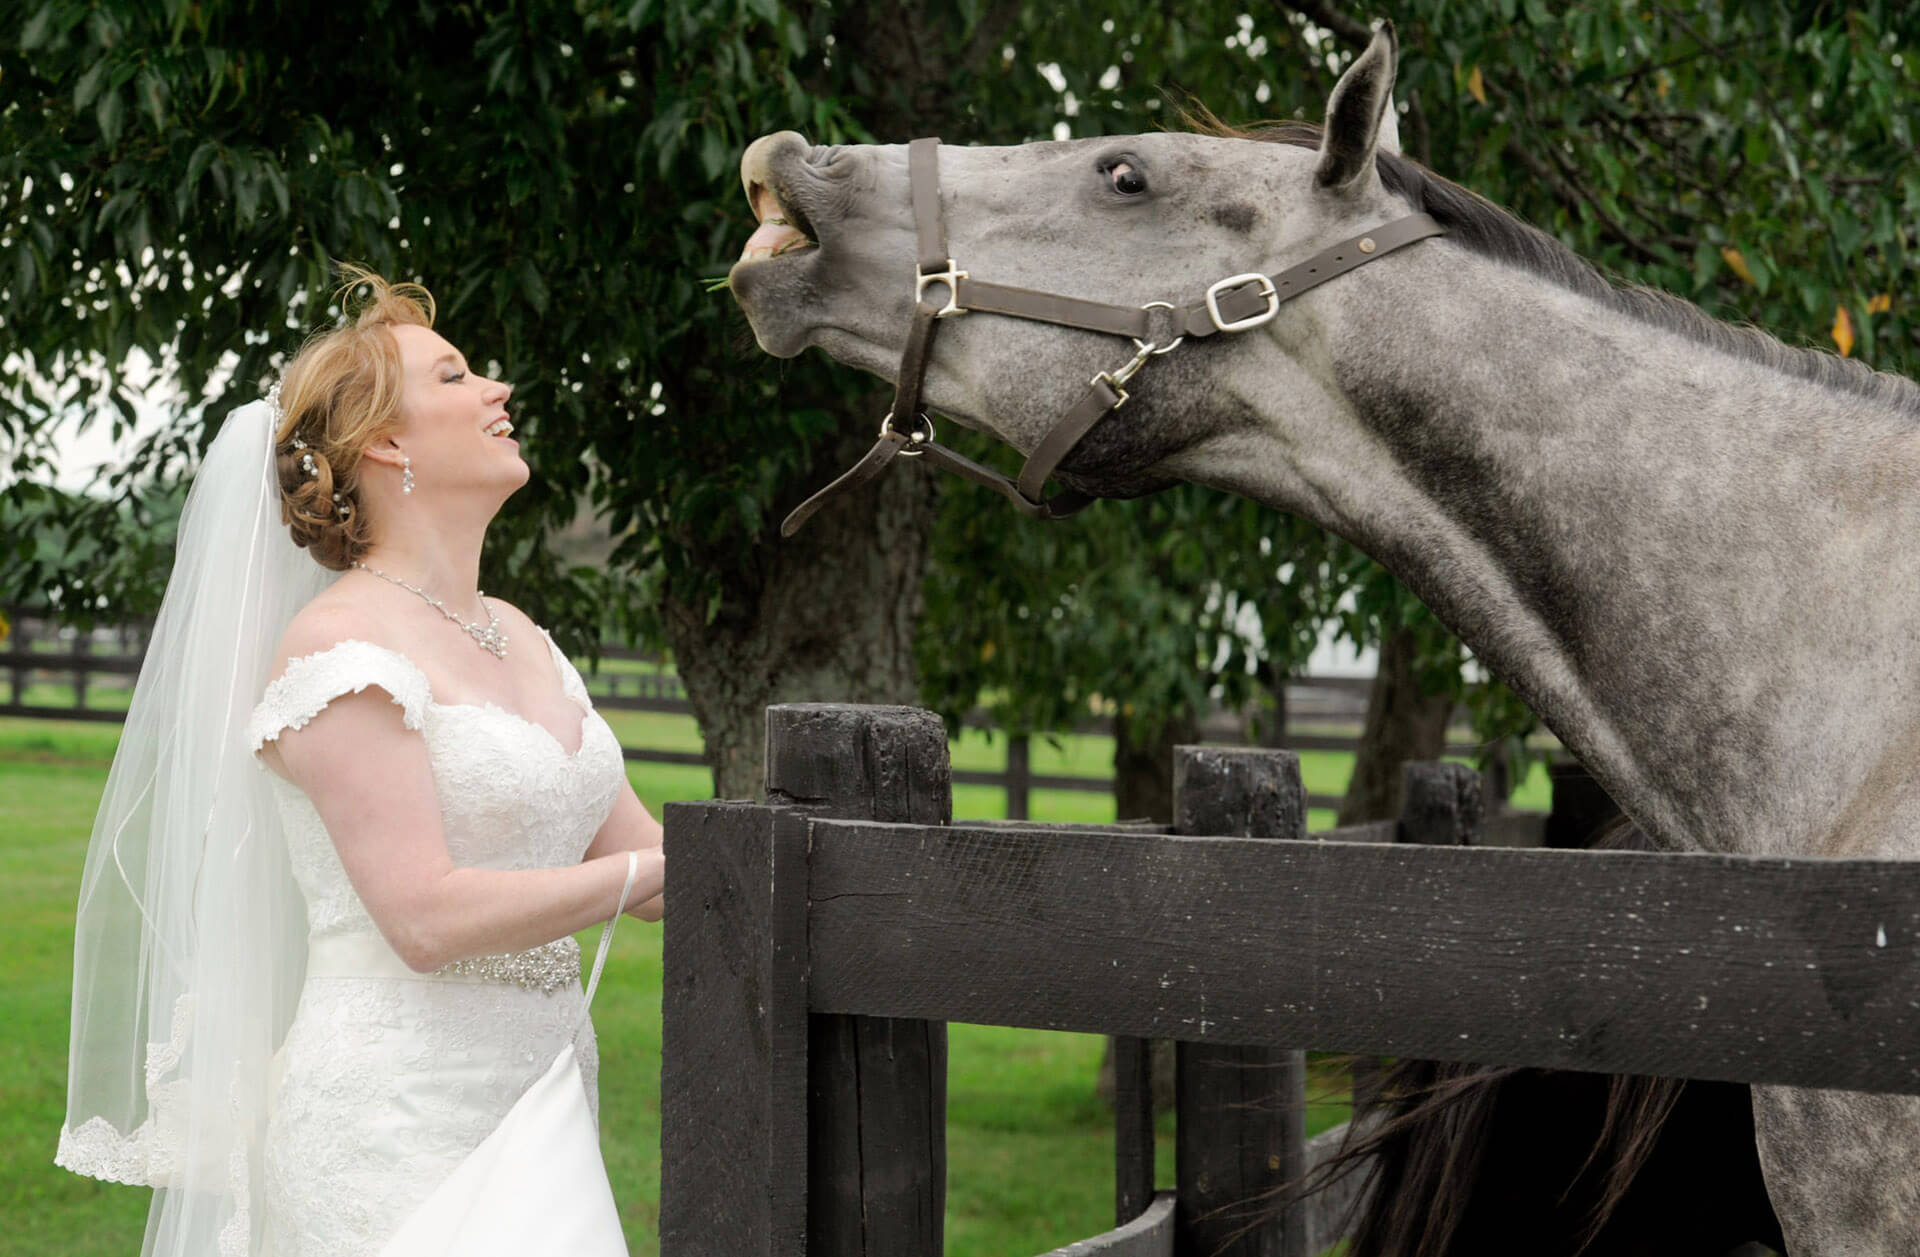 The bride laughs at a horse's attempt to spit on her during her Holly Hotel wedding in Holly, Michigan.